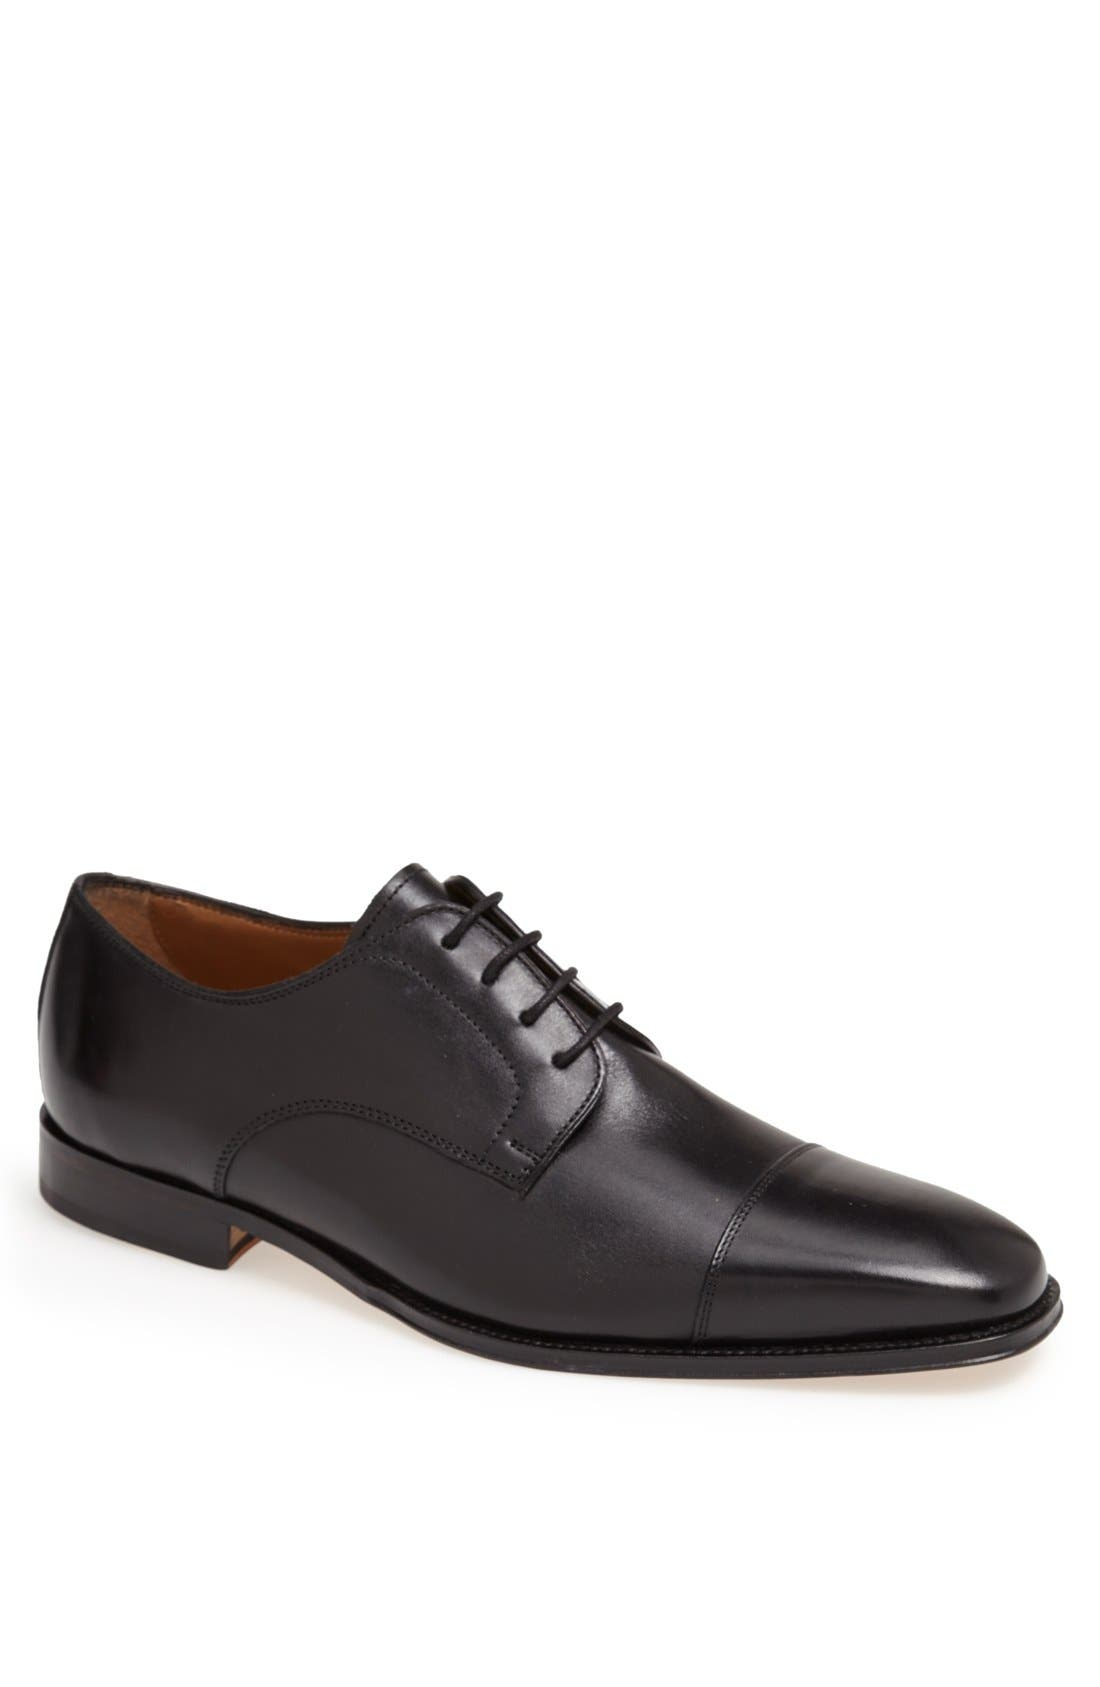 Classico Cap Toe Oxford,                         Main,                         color, BLACK